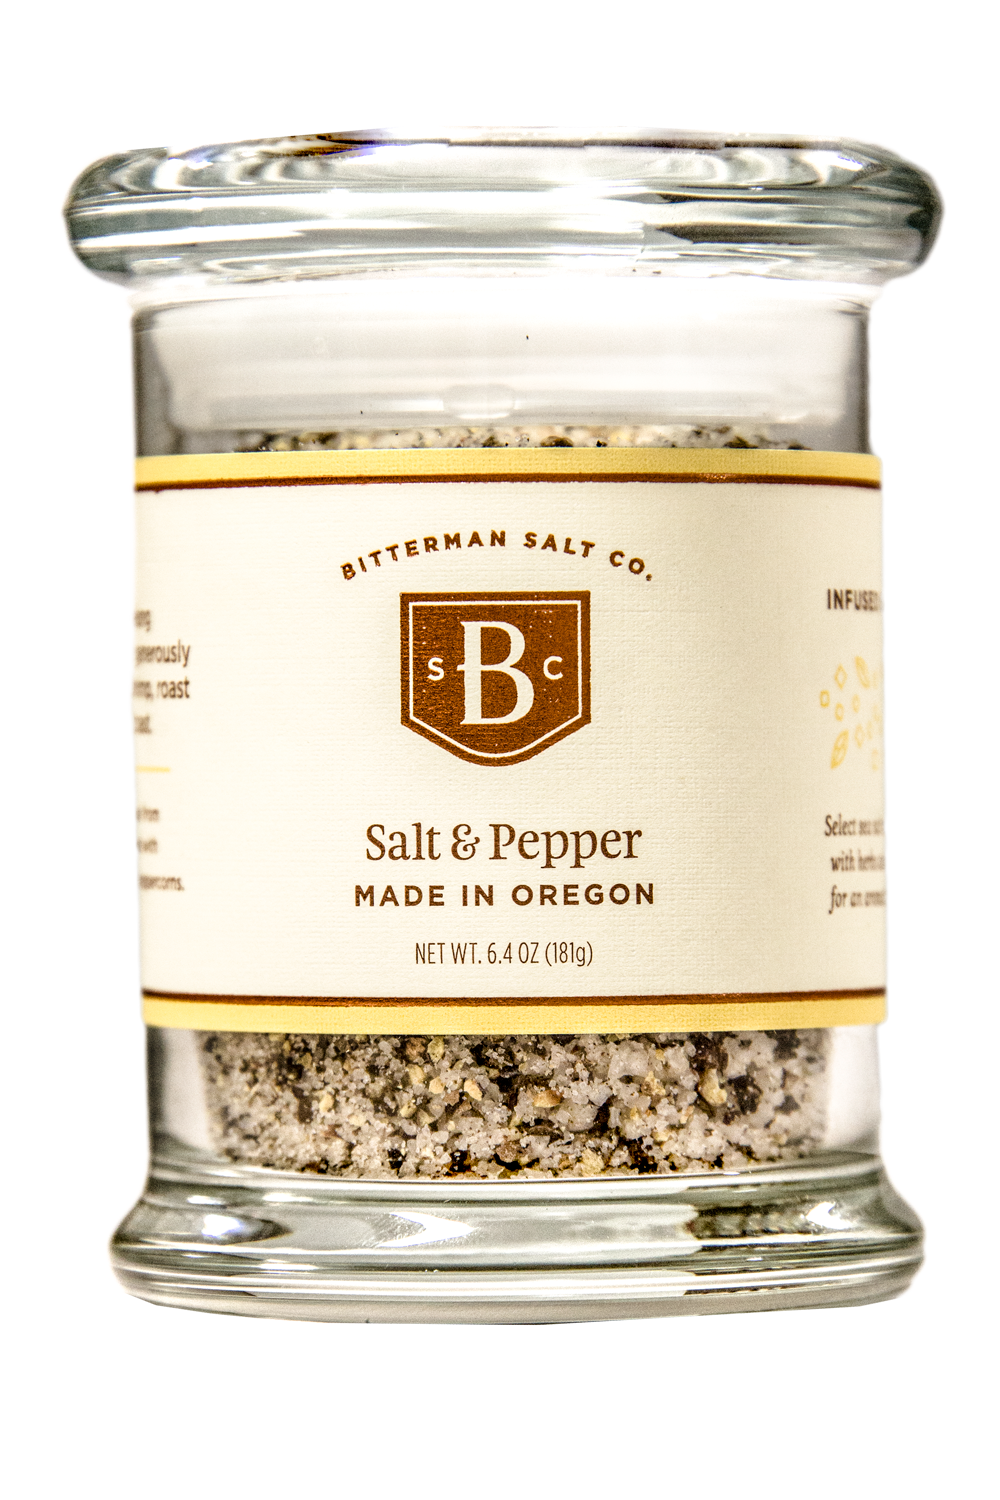 Bitterman's Salt & Pepper Salt-Gourmet Salt-The Meadow